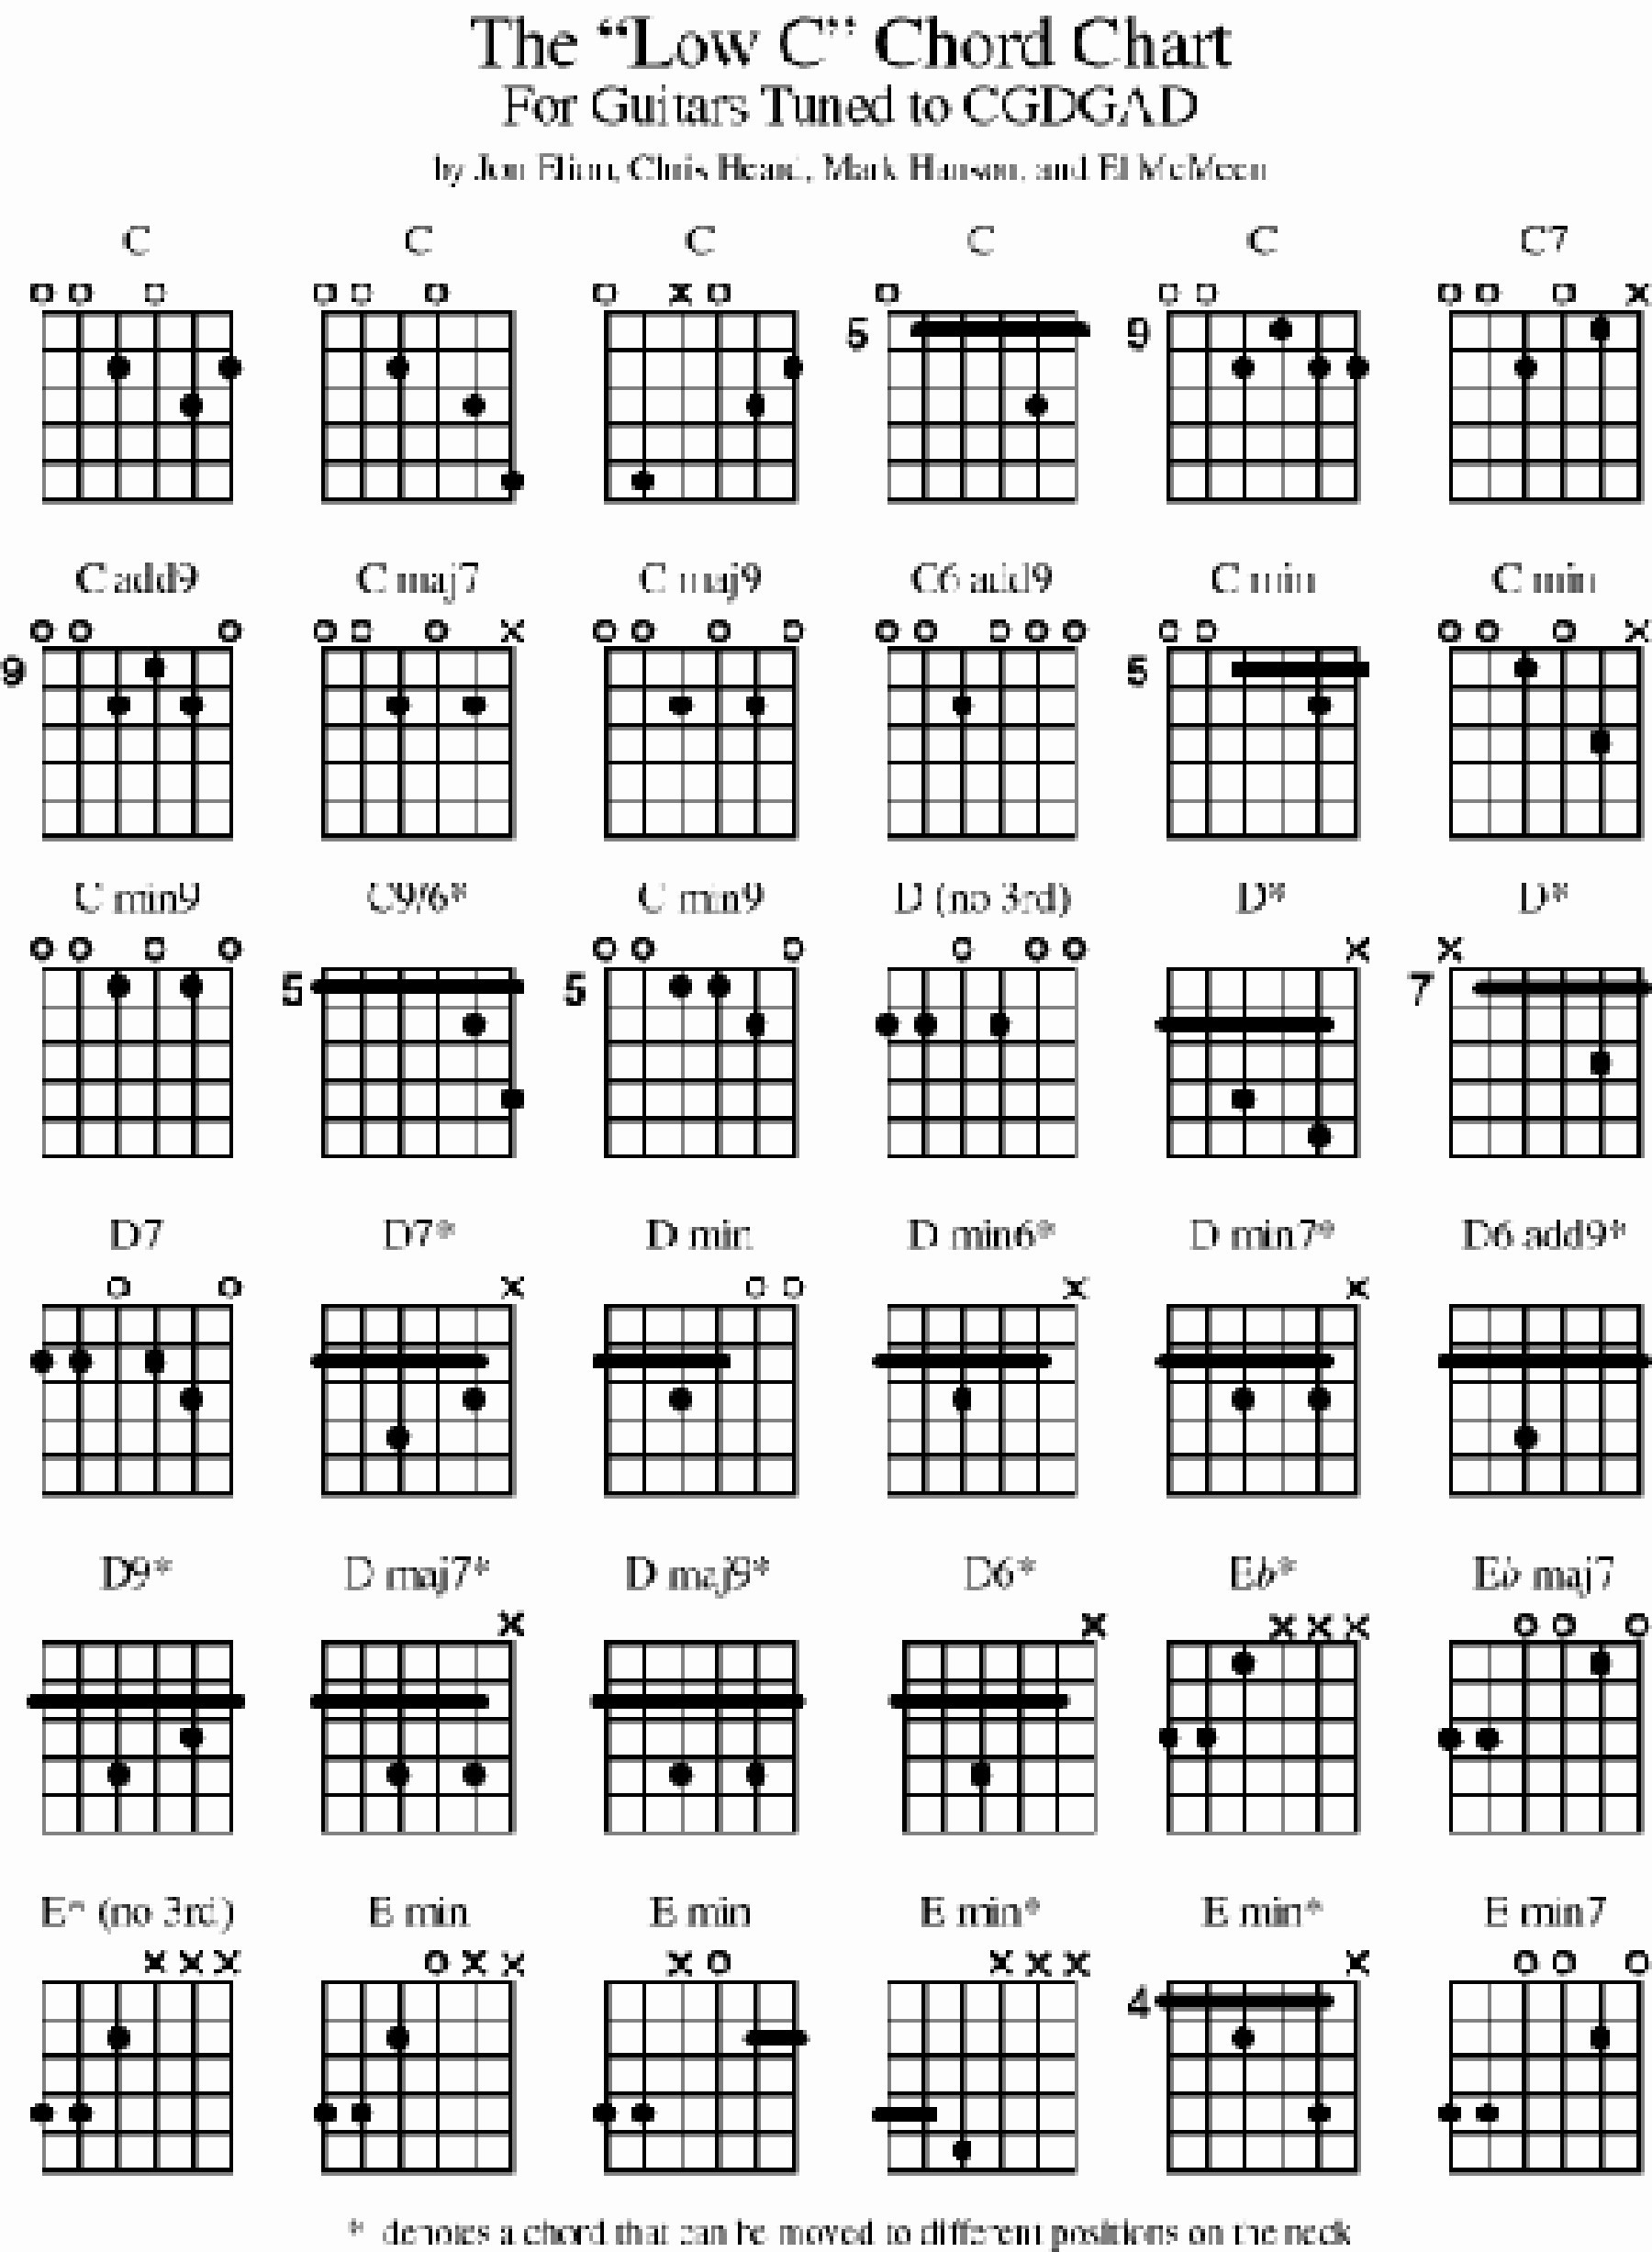 Bass Chord Chart | Accomplice Music - Free Printable Bass Guitar Chord Chart